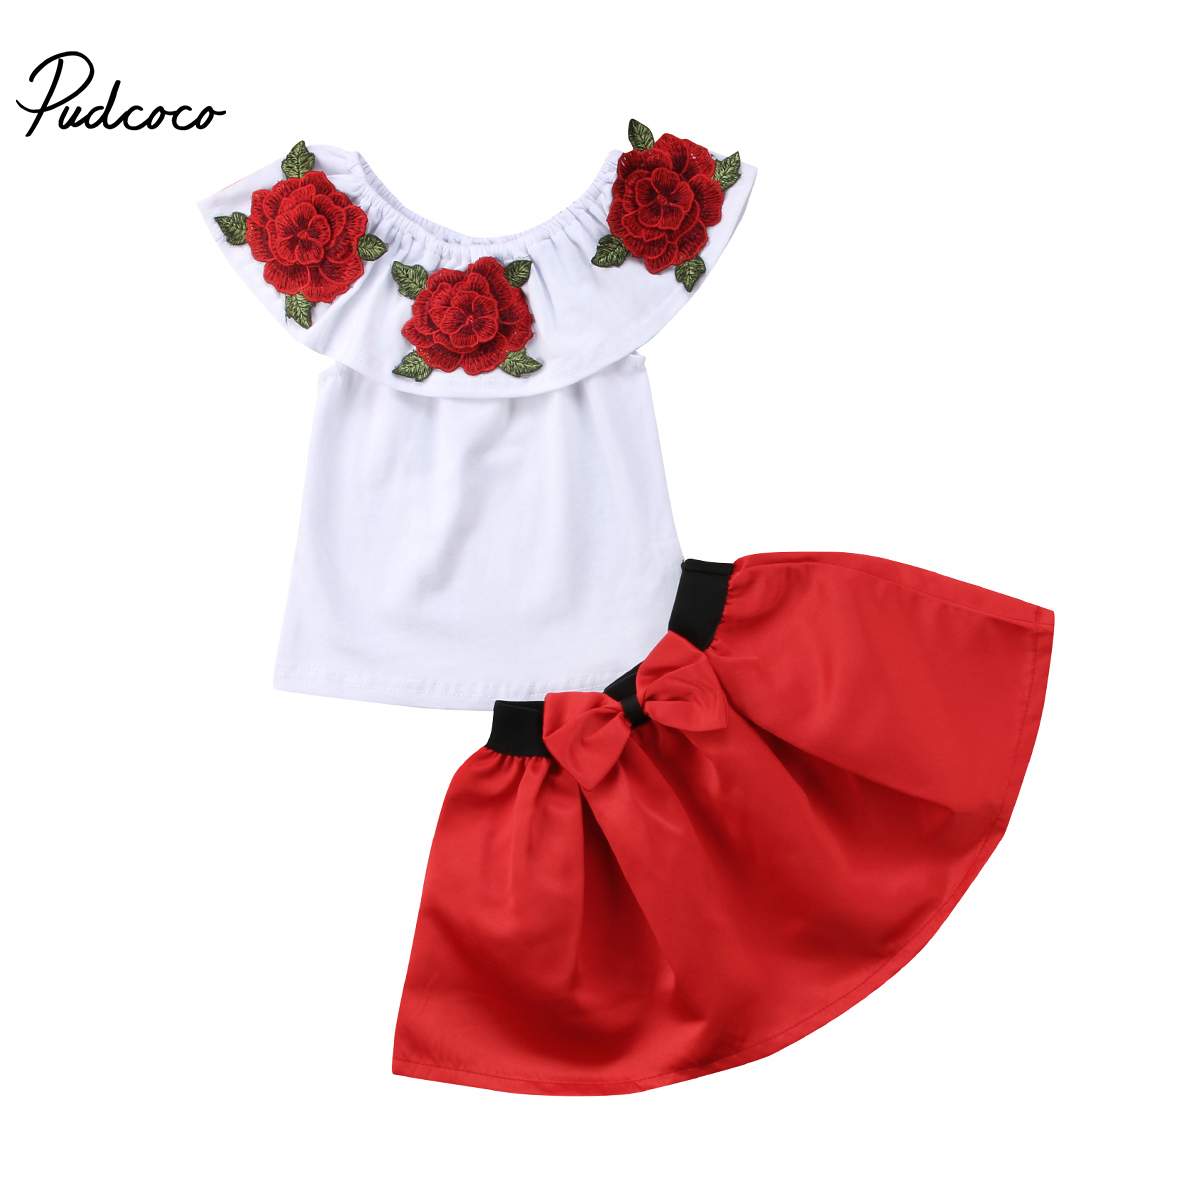 Summer Girls Clothes 2018 New Casual Children Clothing Sets Short SleeveShirts Skirt Kids Suit for Girls 2 3 4 5 6 7  Years girls summer sets 100 page 5